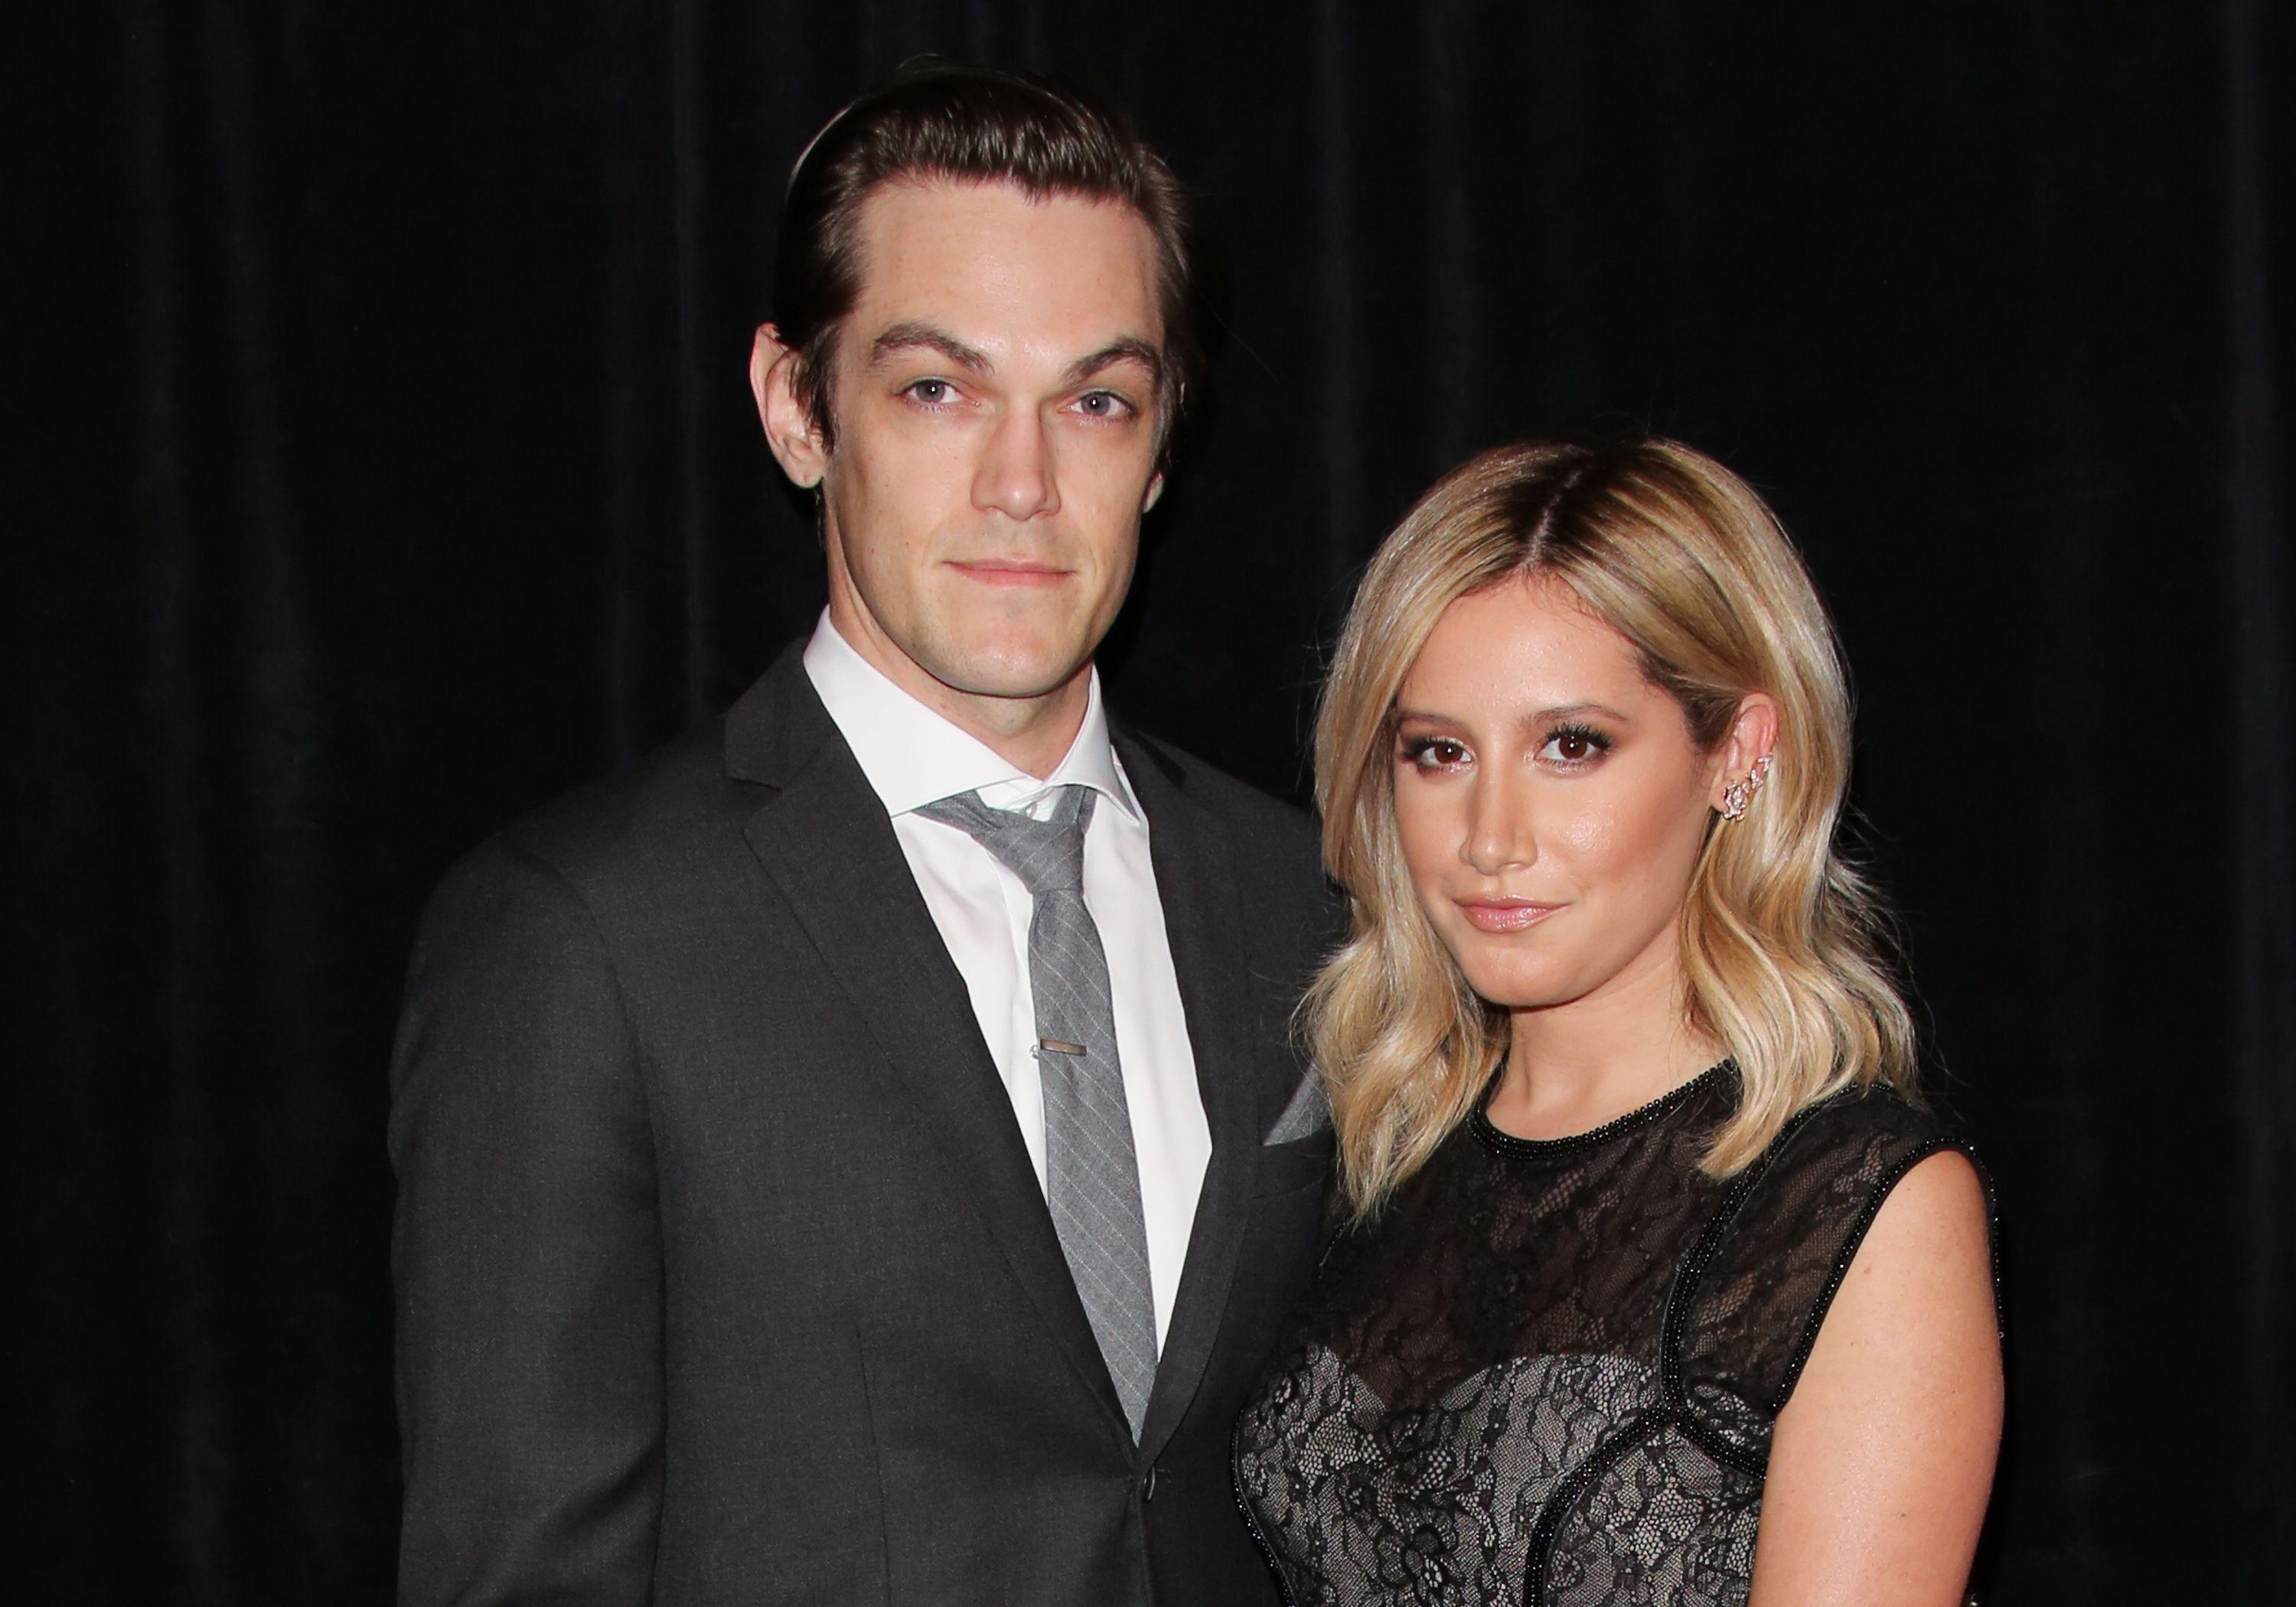 Christopher French and Ashley Tisdale at the Daytime Creative Arts Emmy Awards Gala on June 20, 2014, in Los Angeles, California | Photo: Paul Archuleta/FilmMagic/Getty Images